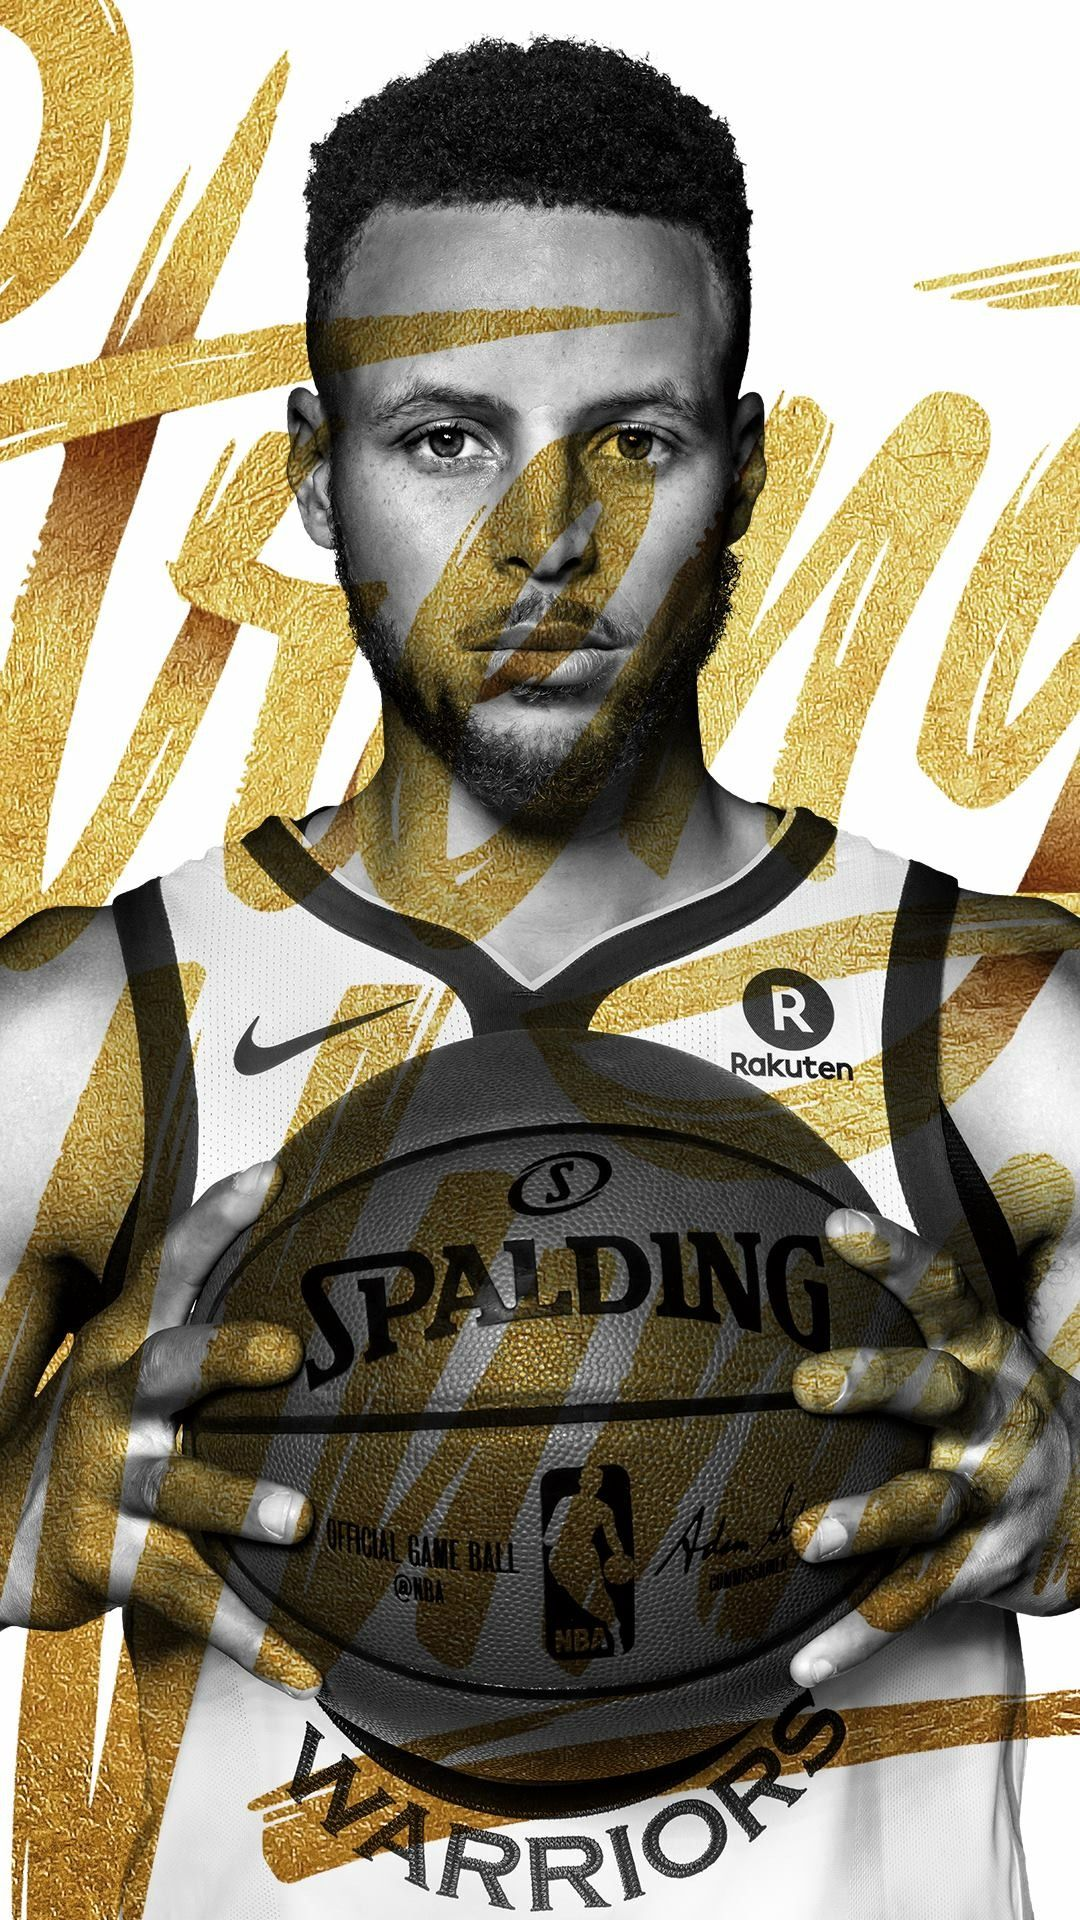 The Coolest Stephen Curry Wallpaper Nba Stephen Curry Curry Nba